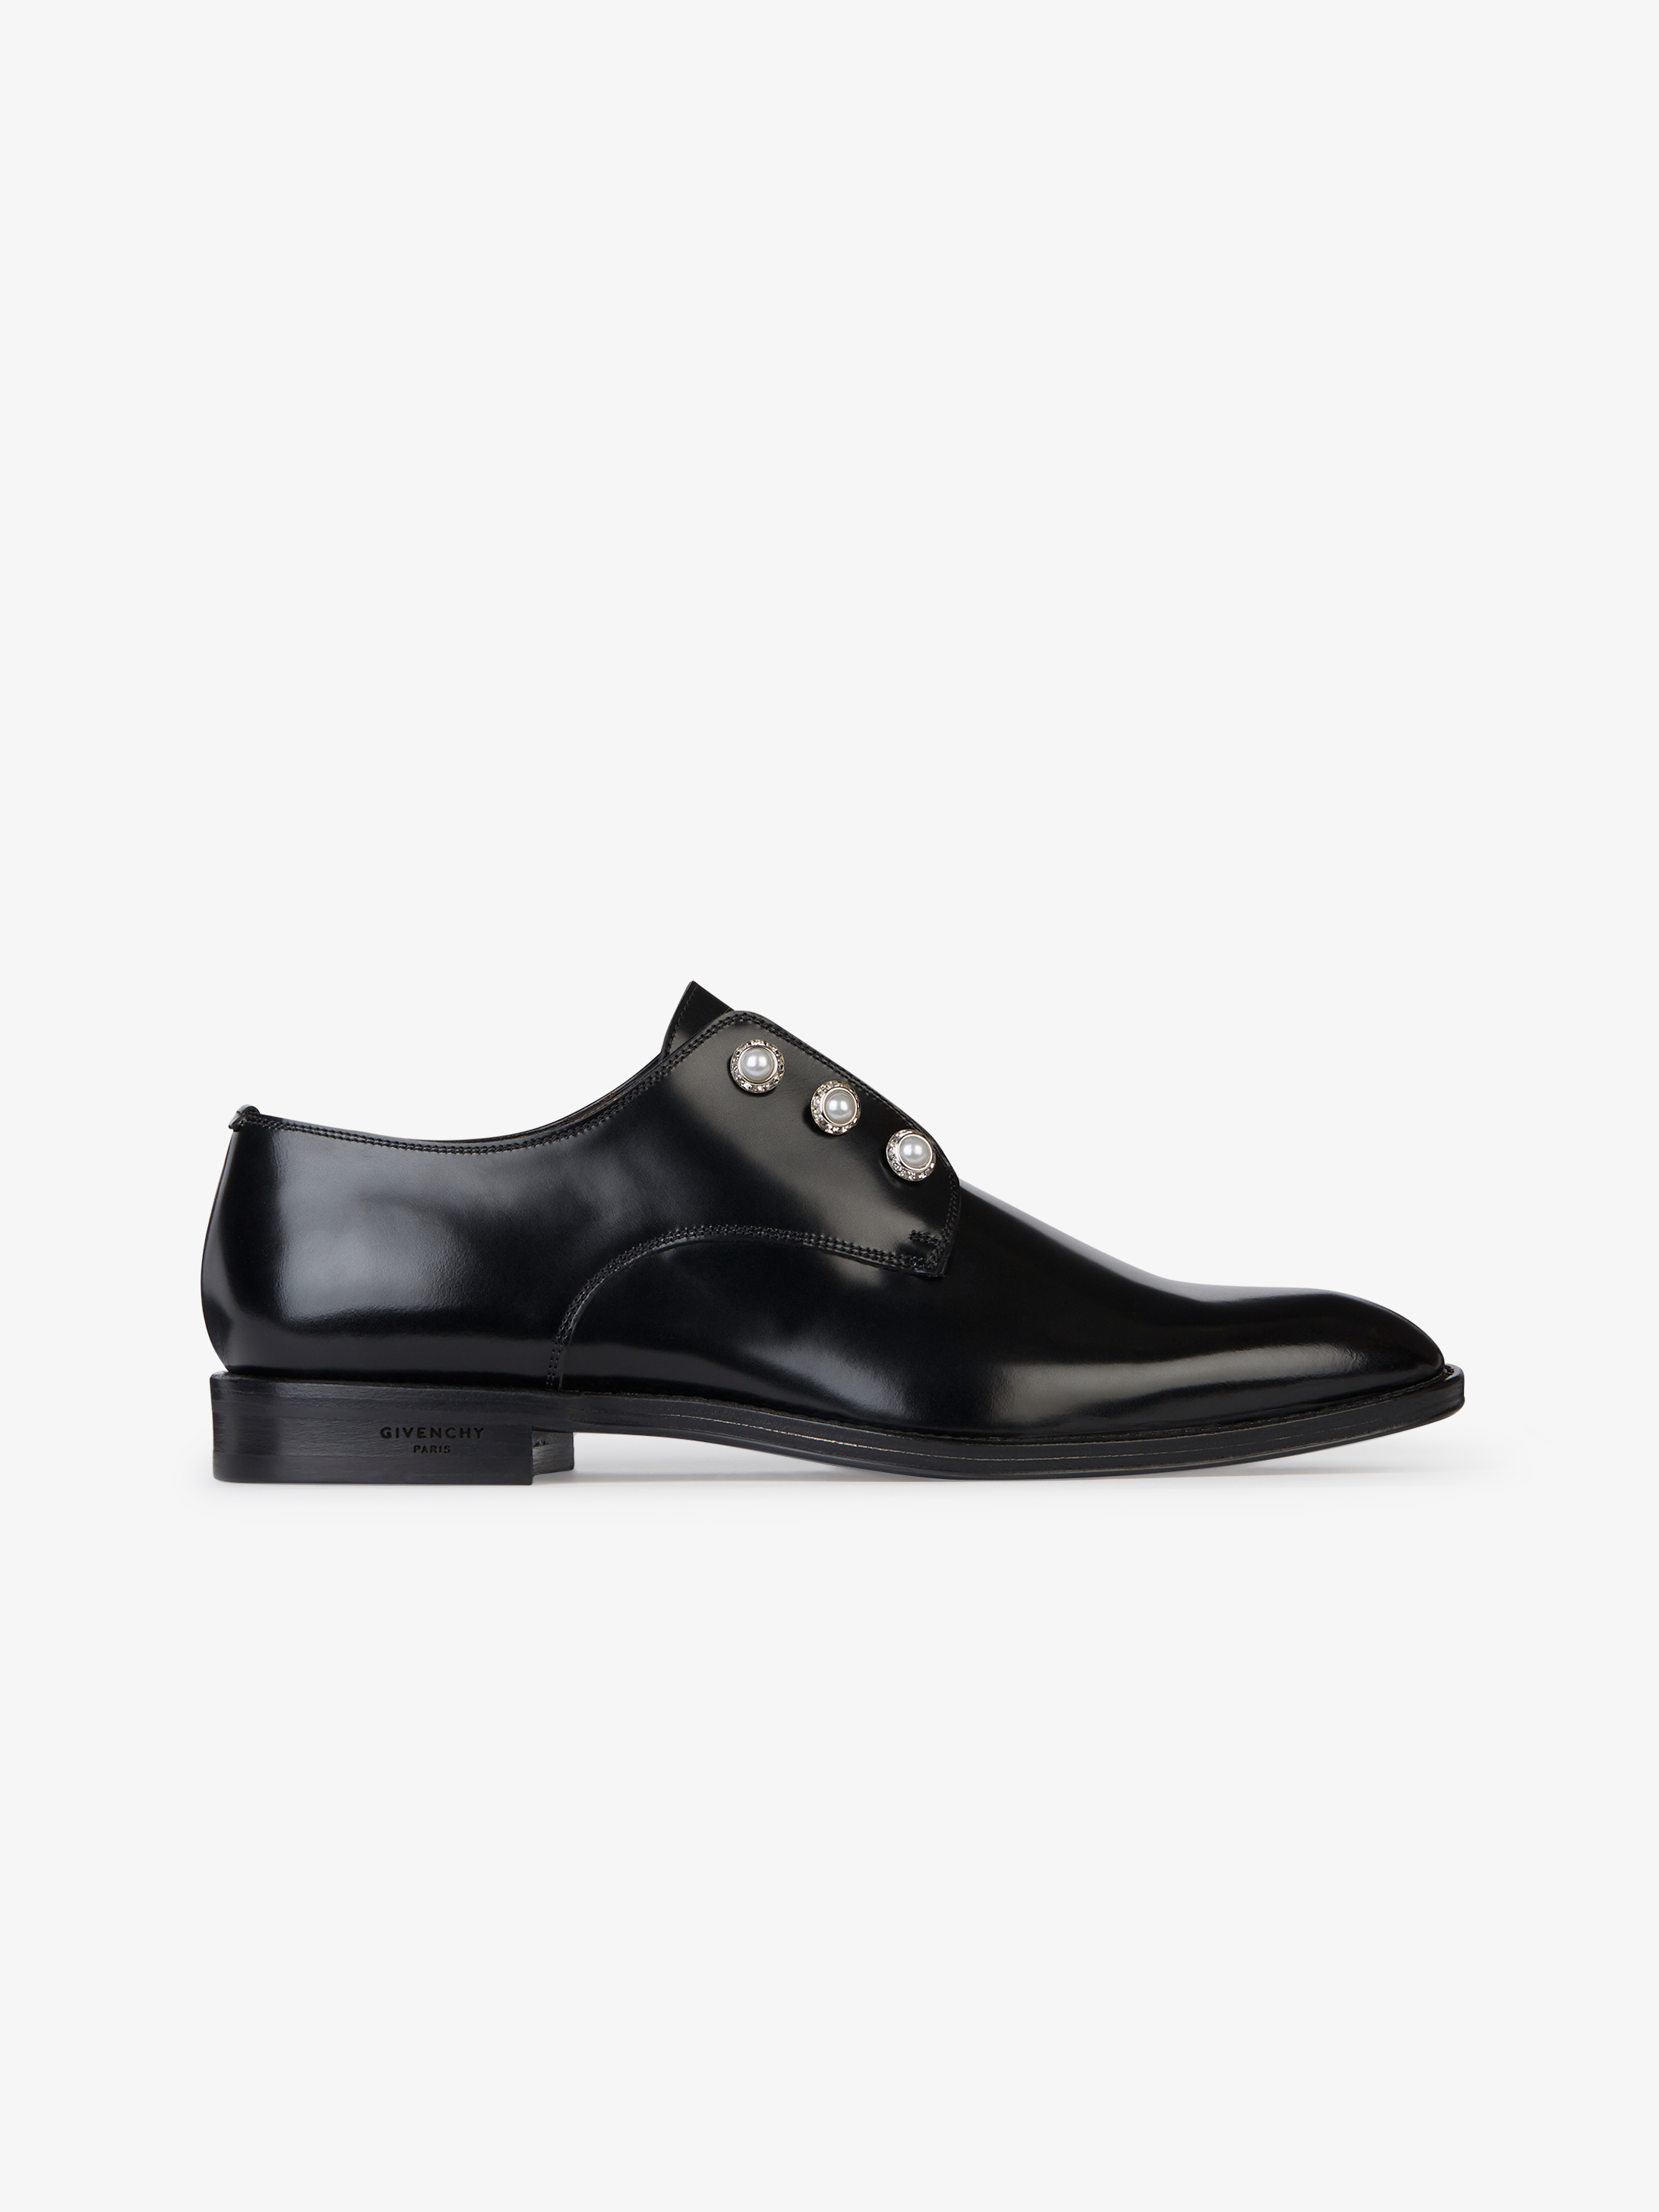 Derbies elastic in Box leather